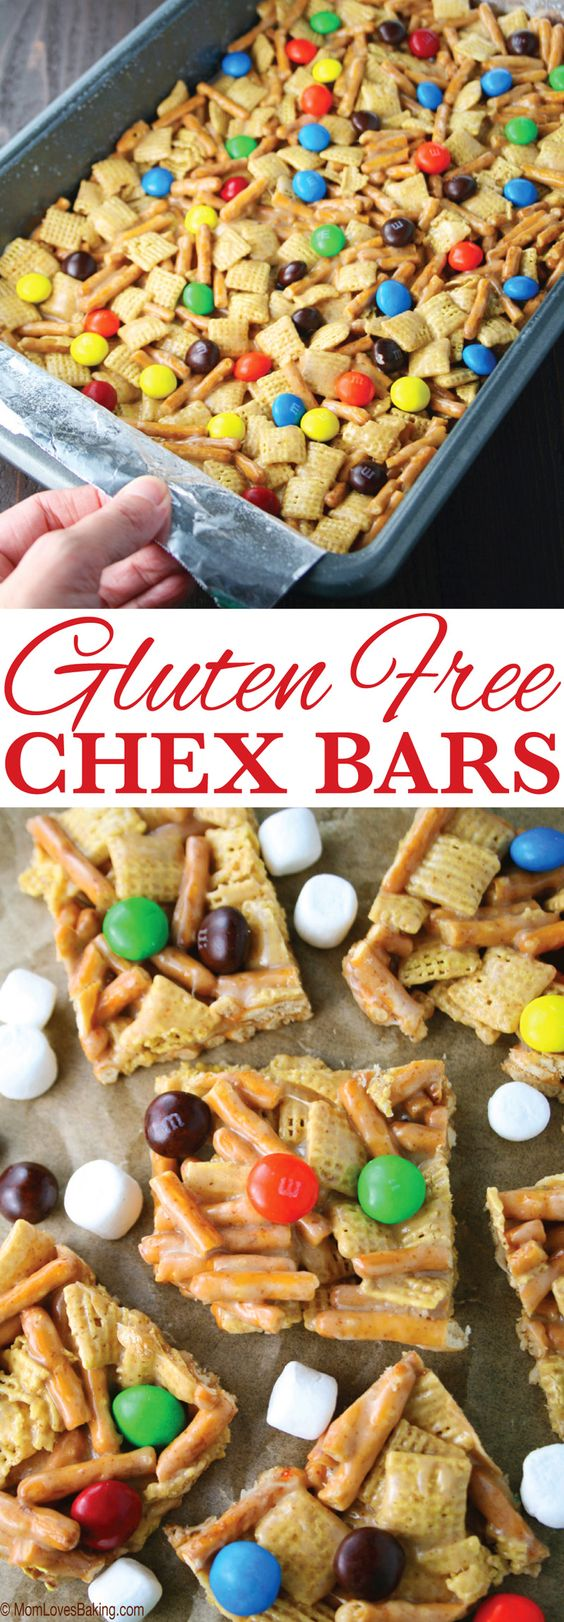 Can anyone think of six ideas for a gluten free snack?